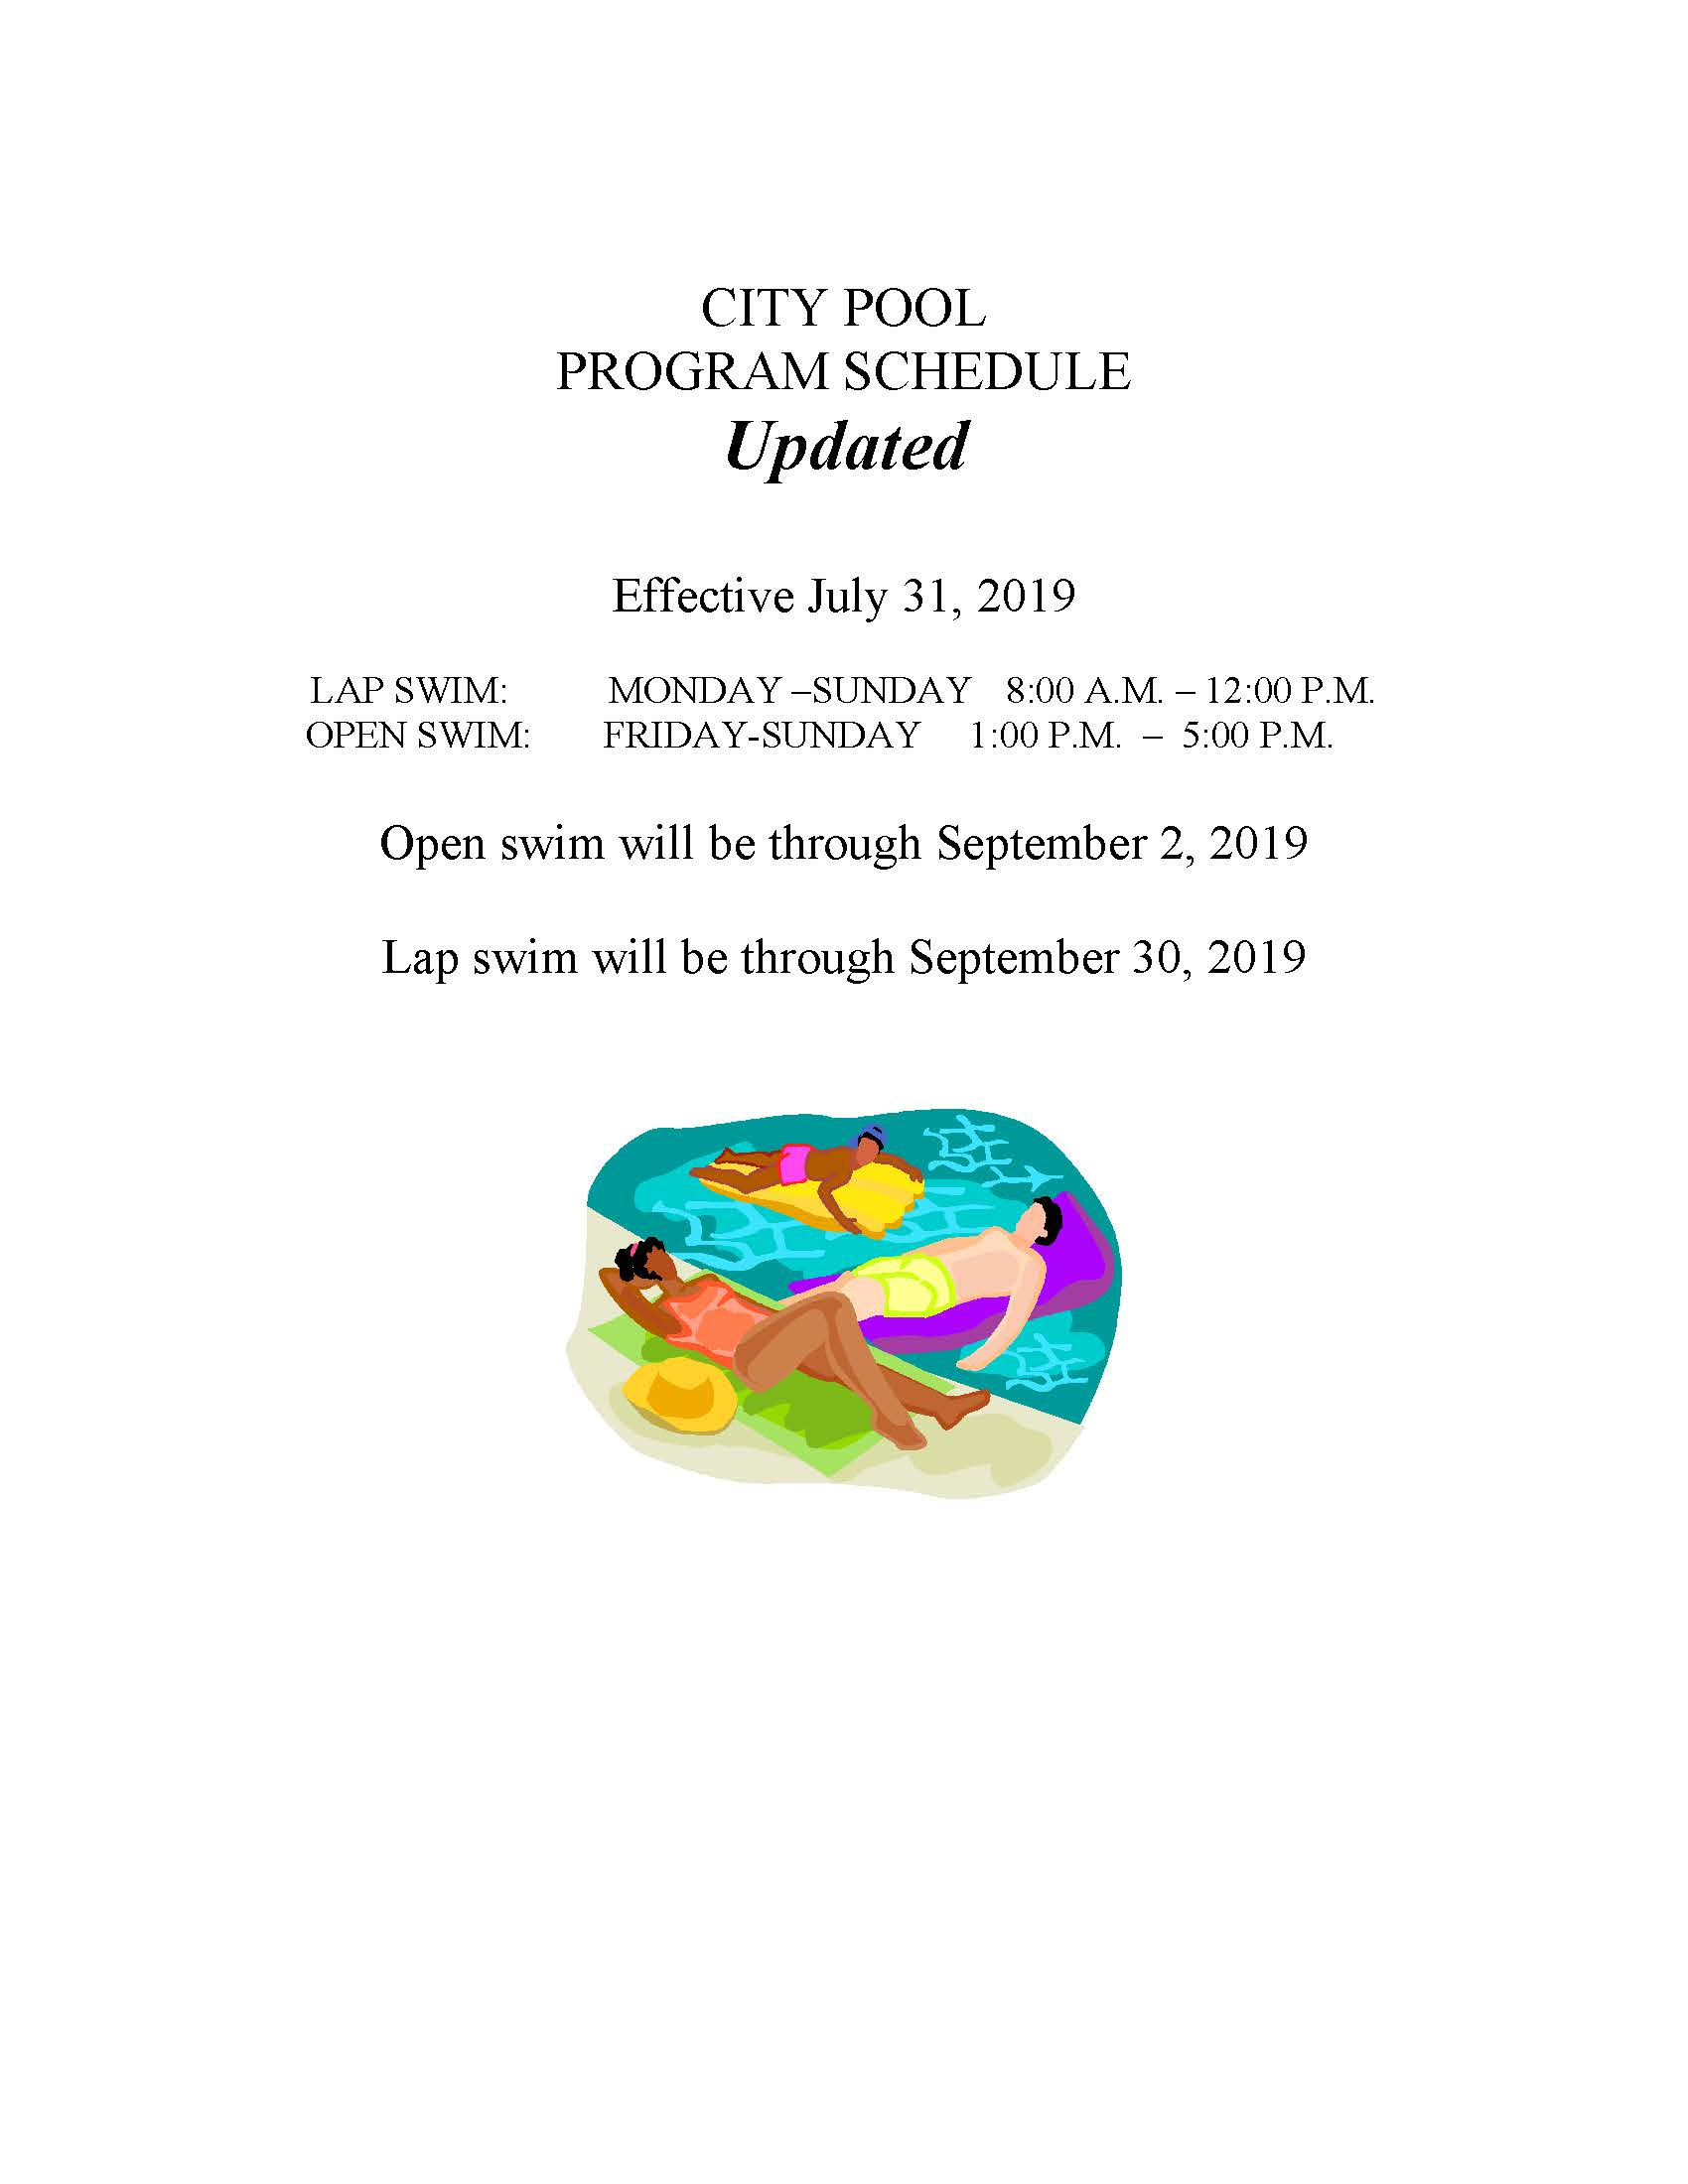 POOL SCHEDULE PROGRAM  UPDATE WITH CLOSING DATES-2019